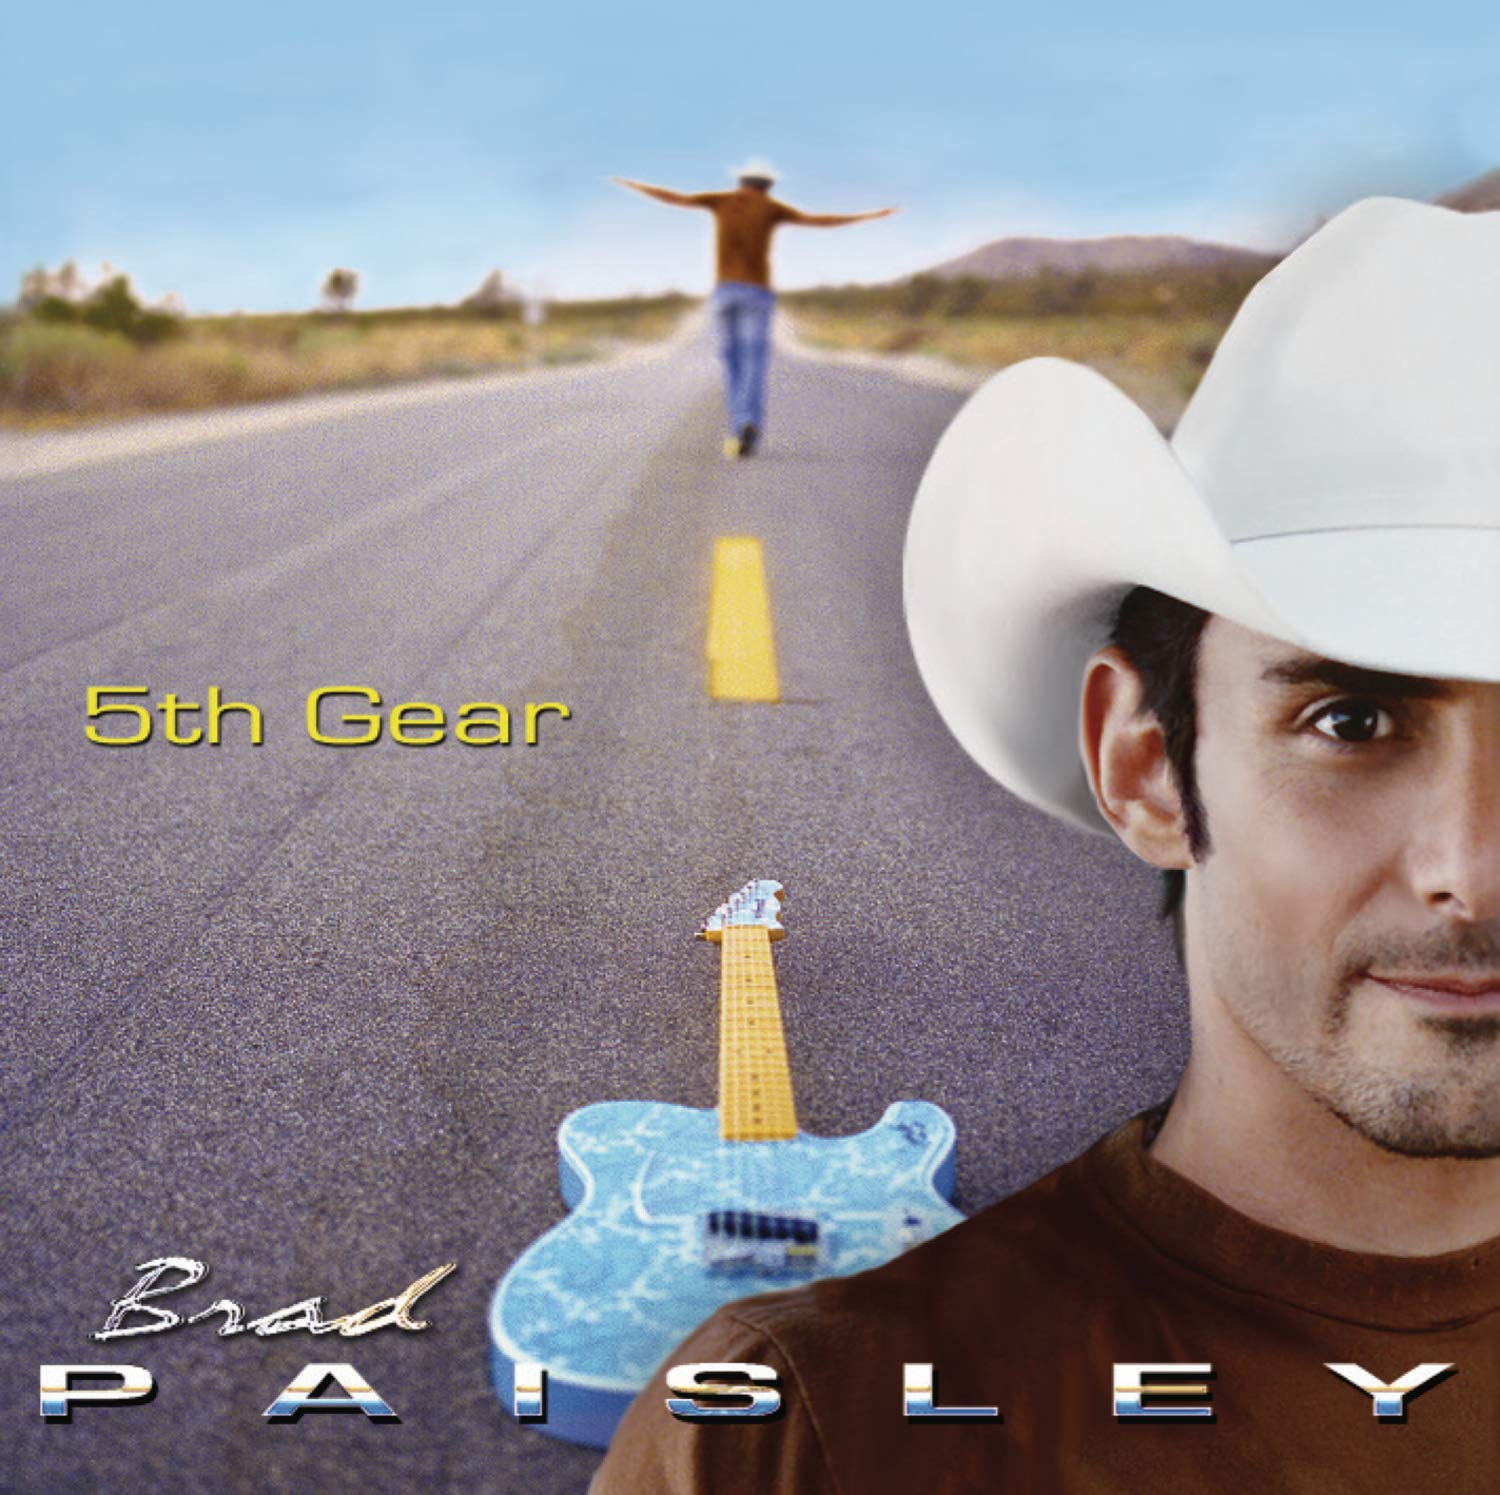 Brad Paisley - 5th Gear - Amazon.com Music